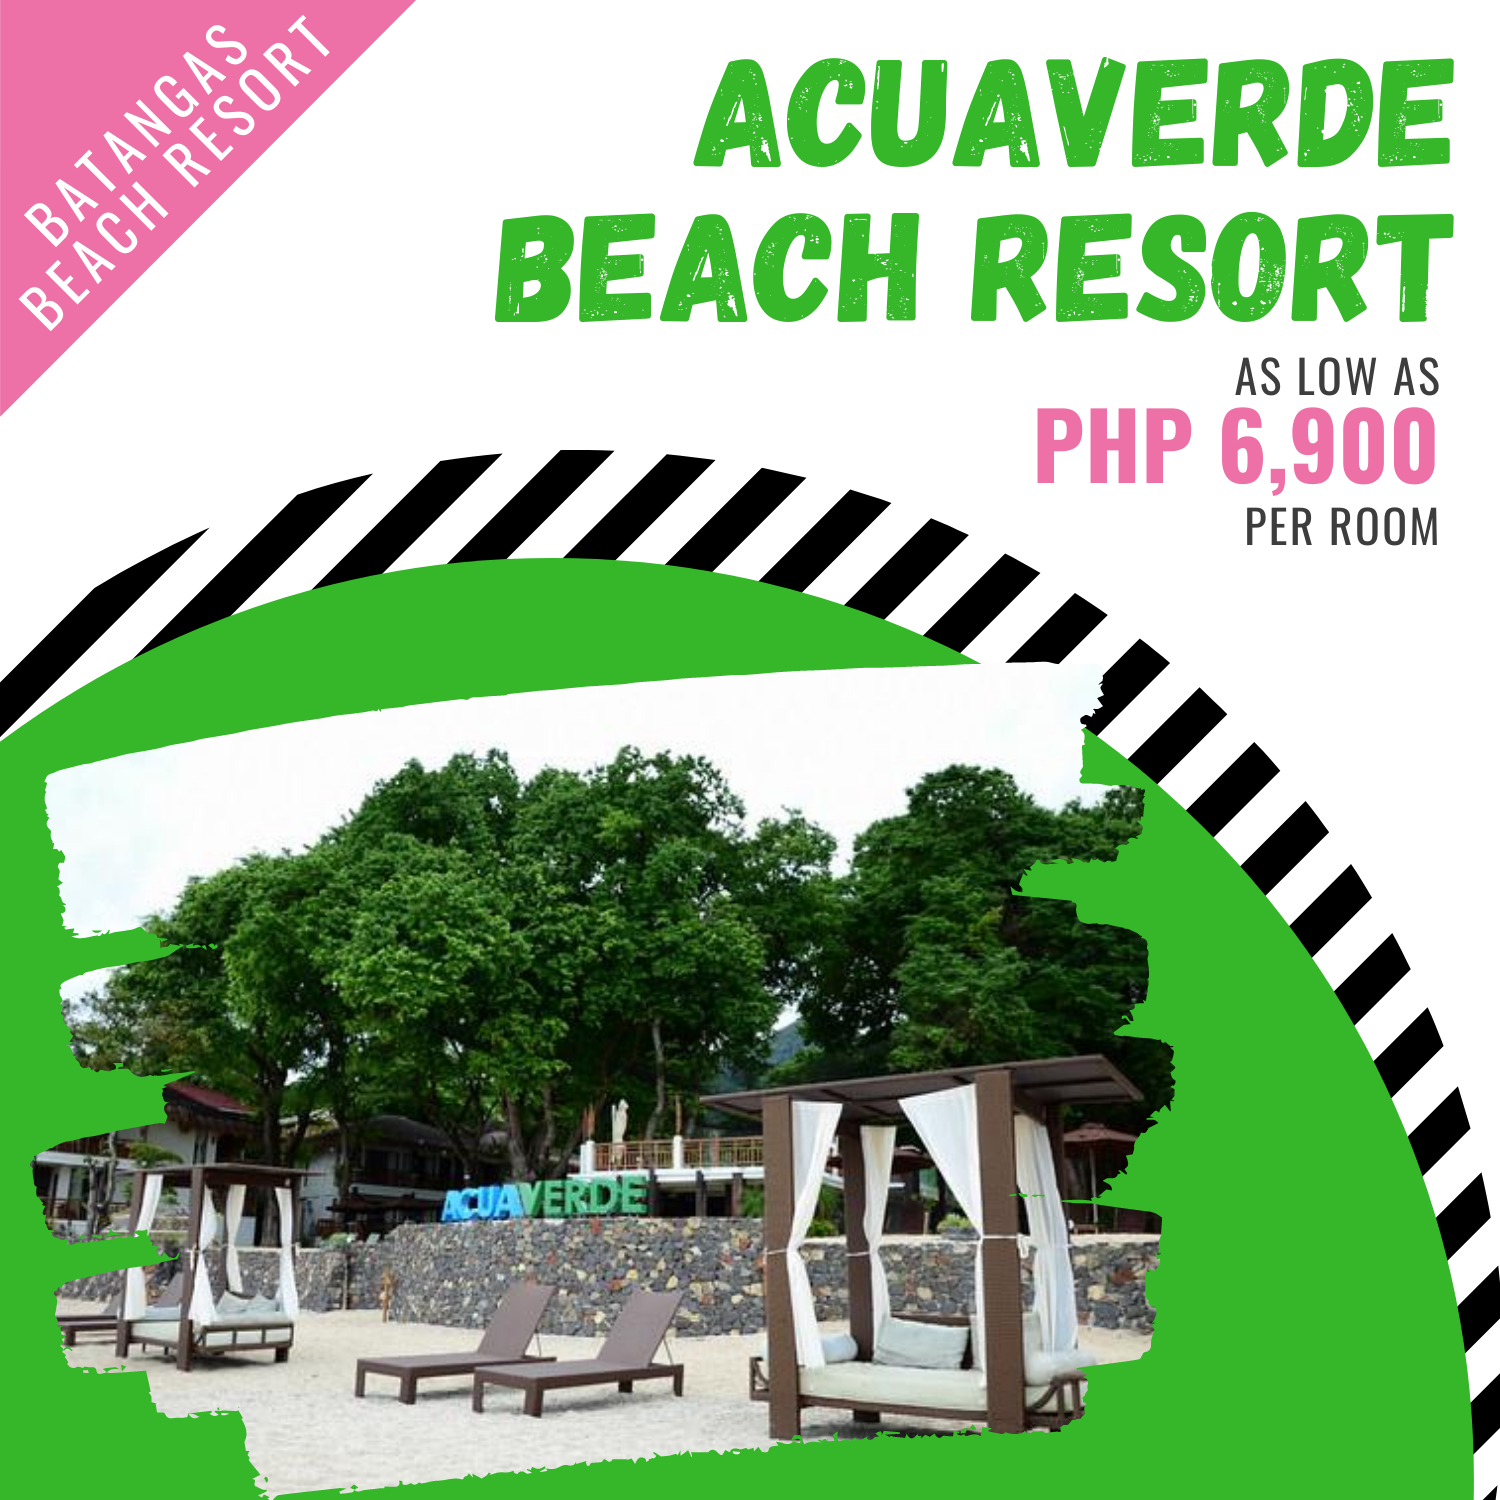 Acuaverde Beach Resort, Batangas